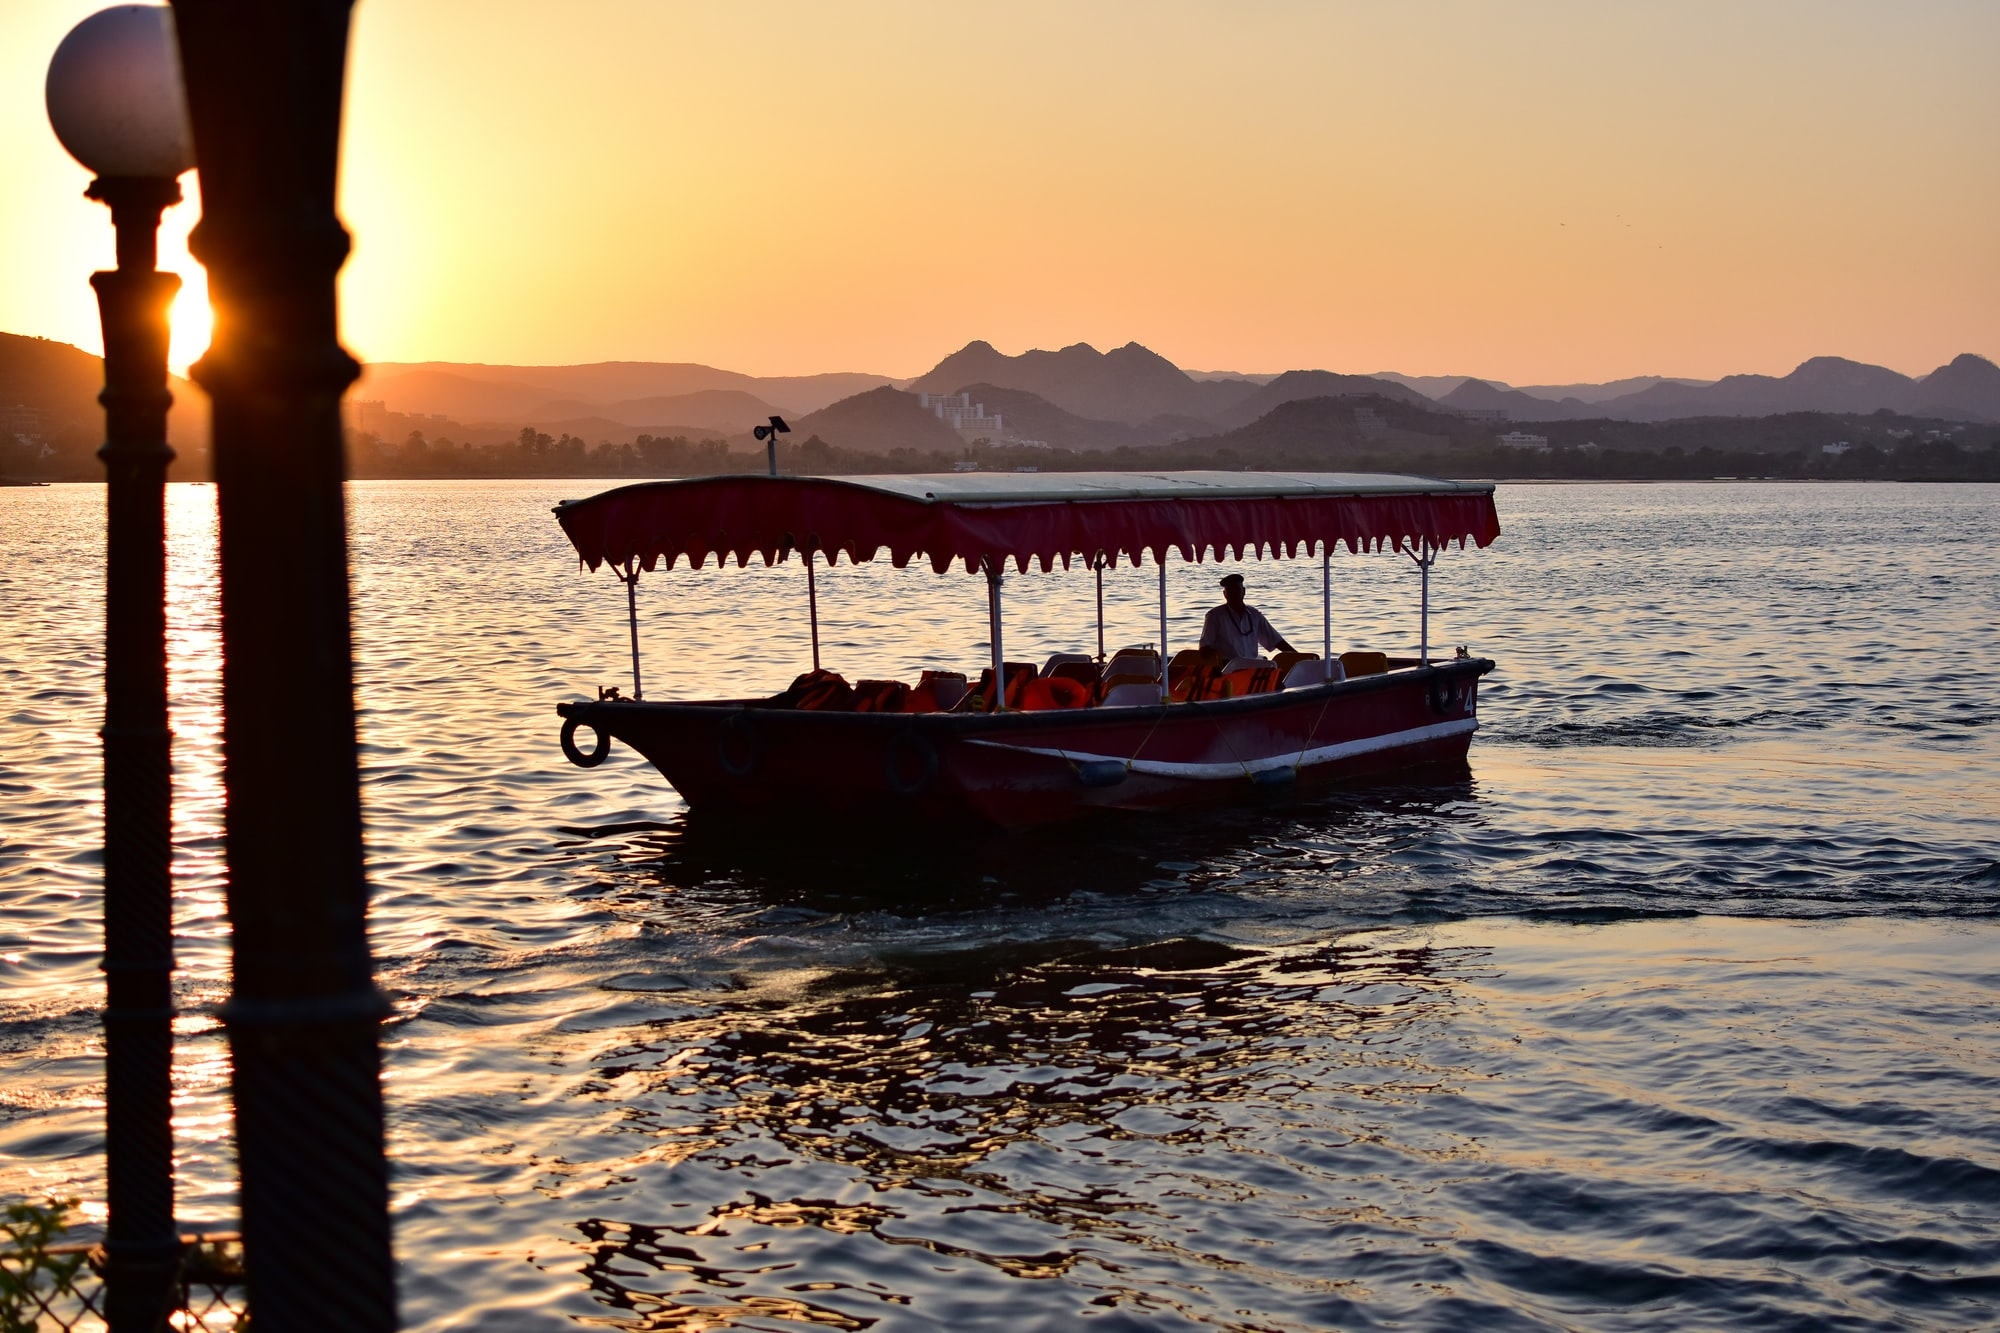 A beautiful sunset on the lake pichola at Udaipur as the boat approaches to pick us up. A must visit! Udaiur, travel, india, sunset